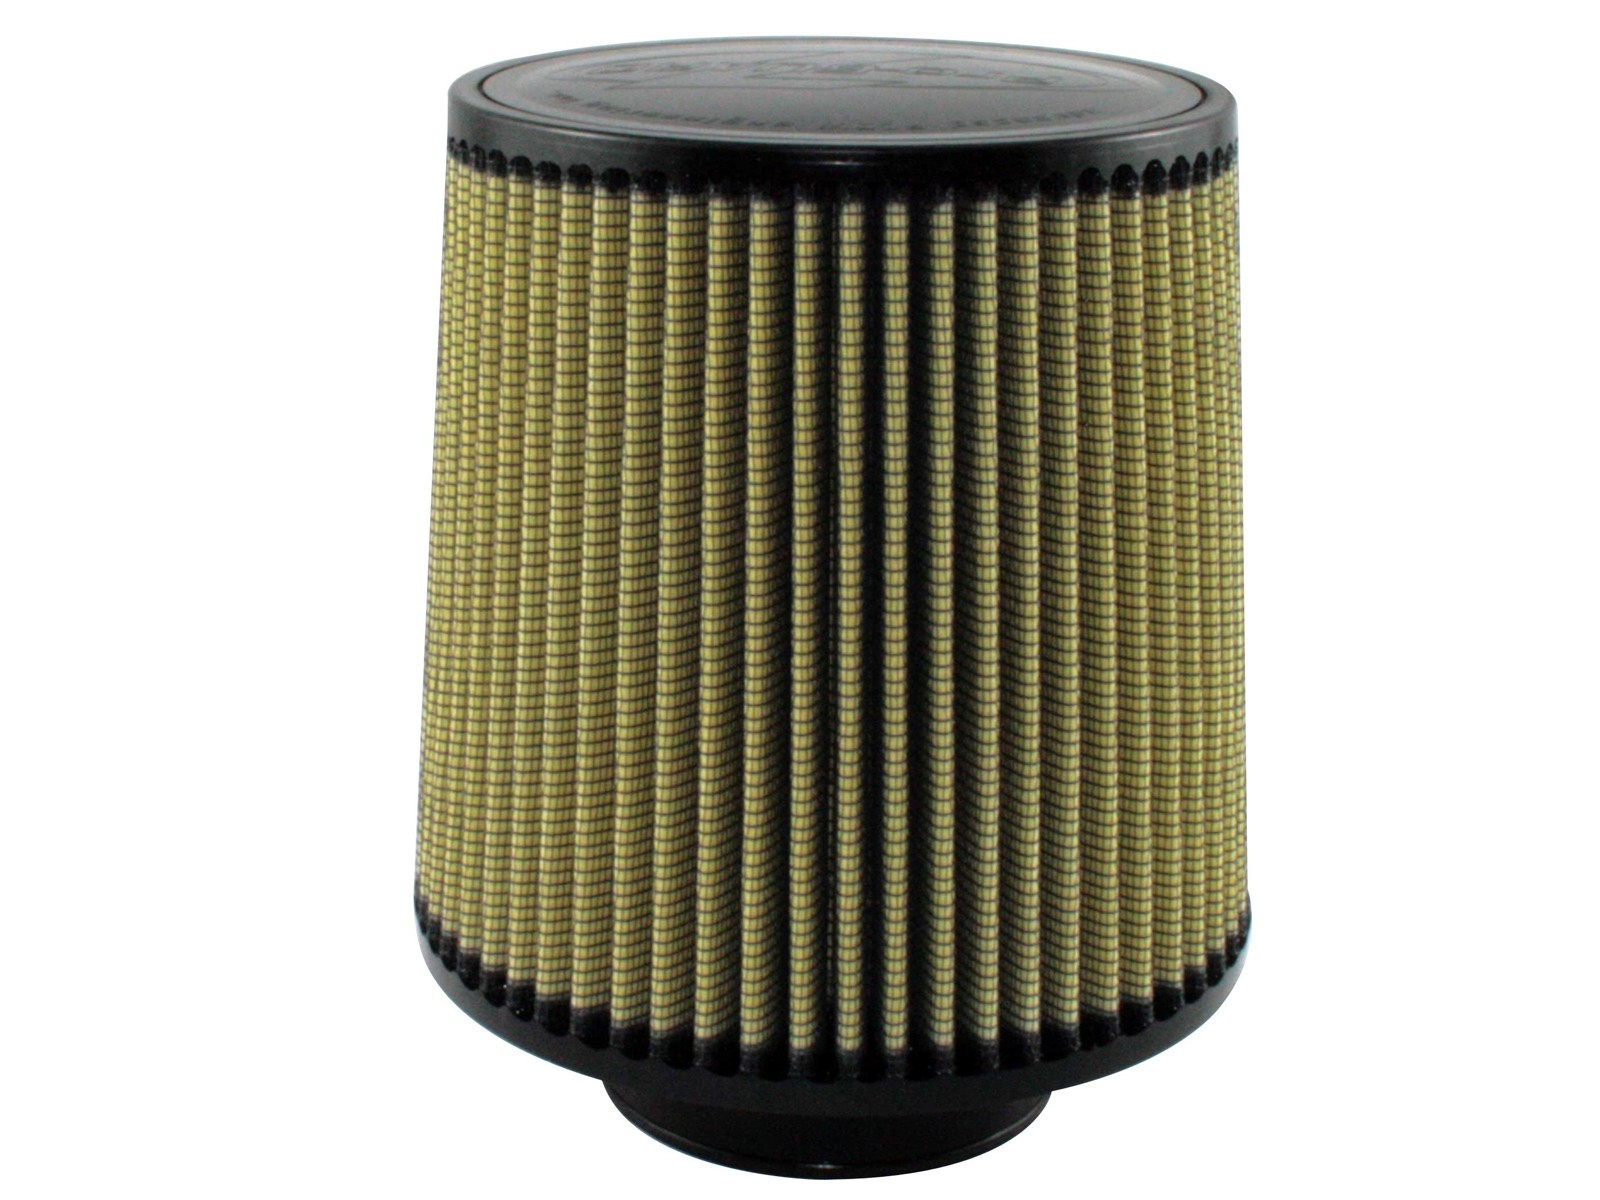 aFe POWER 72-90009 Magnum FLOW Pro GUARD7 Air Filter